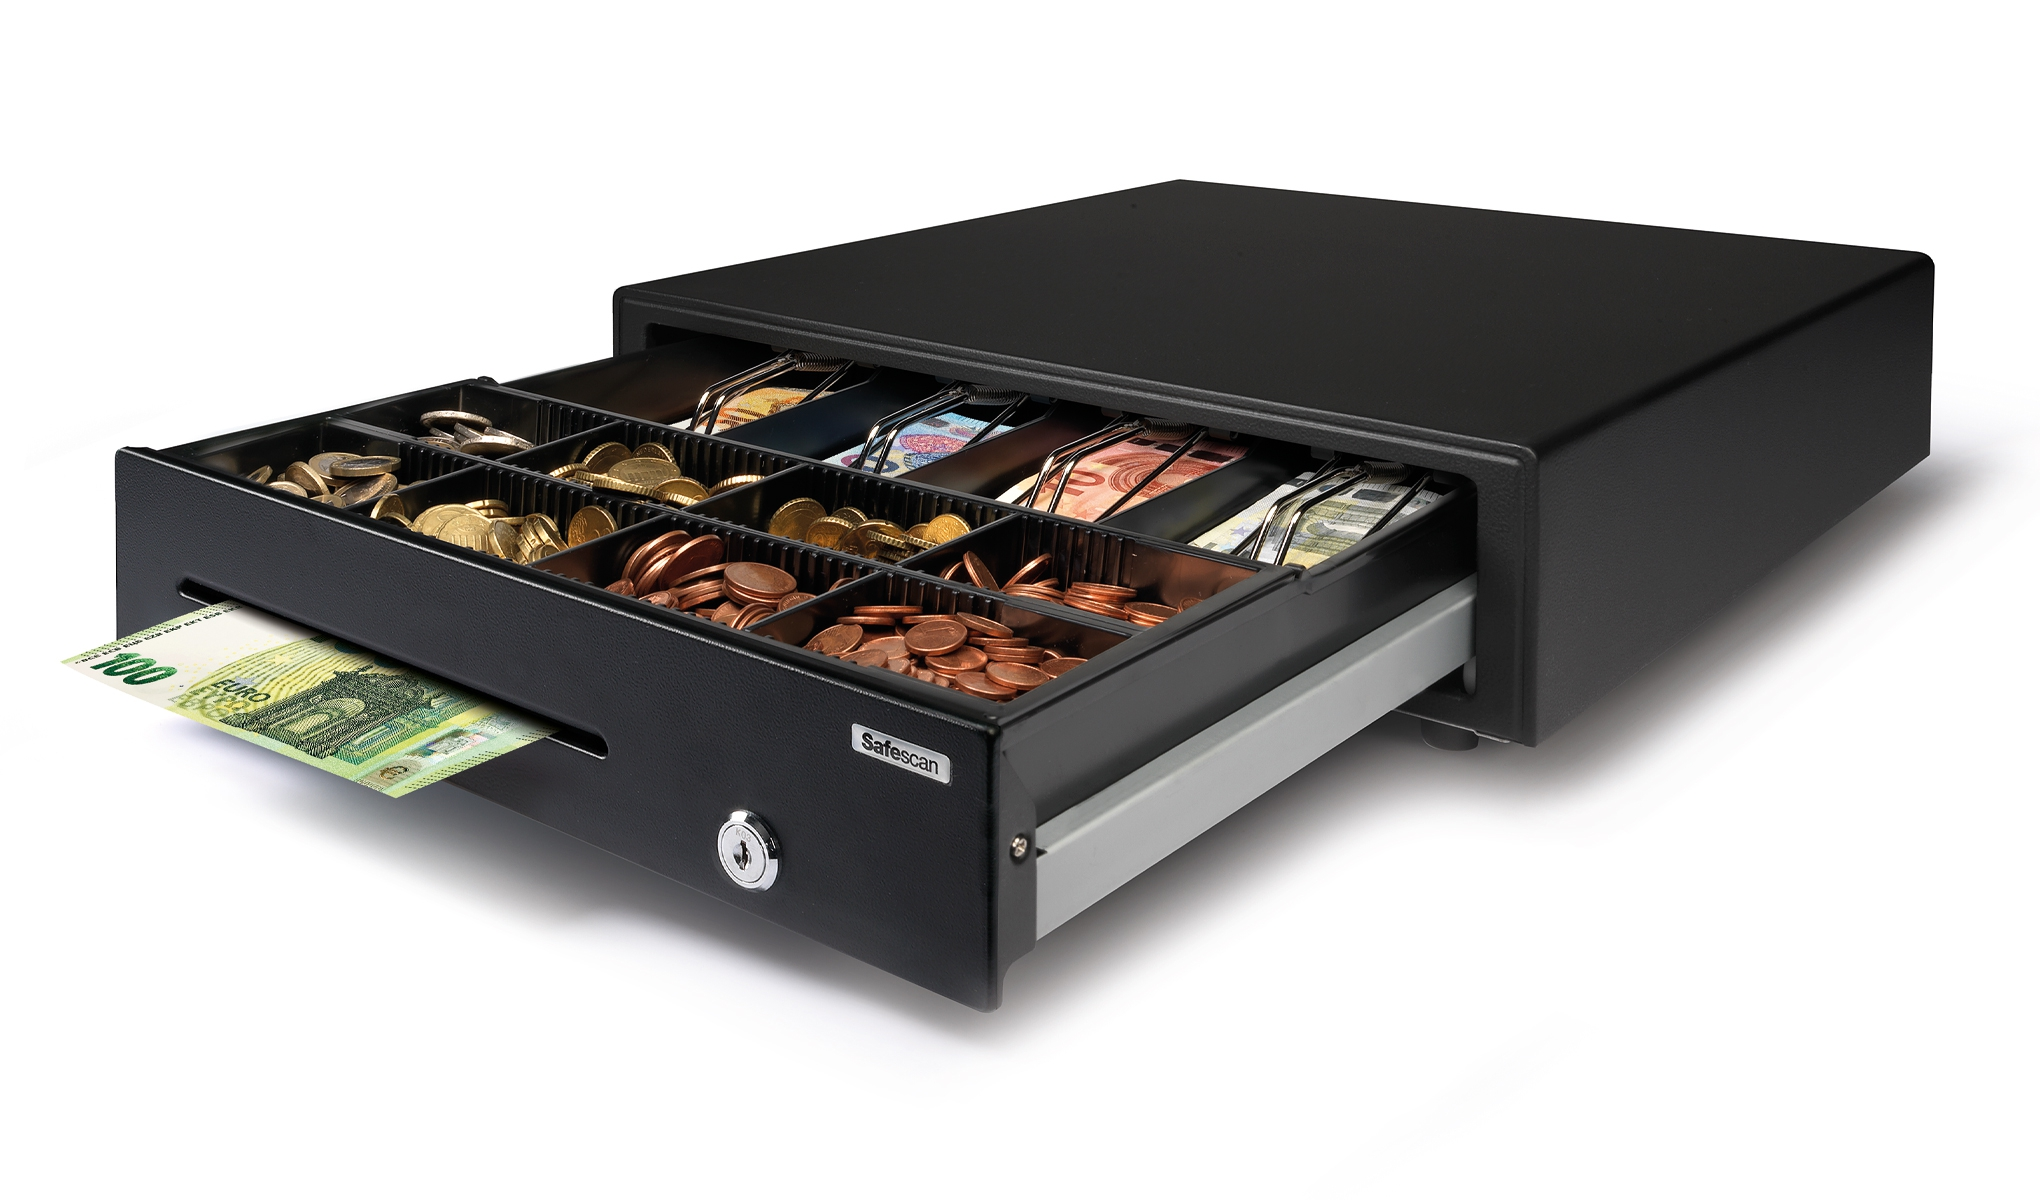 safescan-sd4141-cash-tray-lay-out